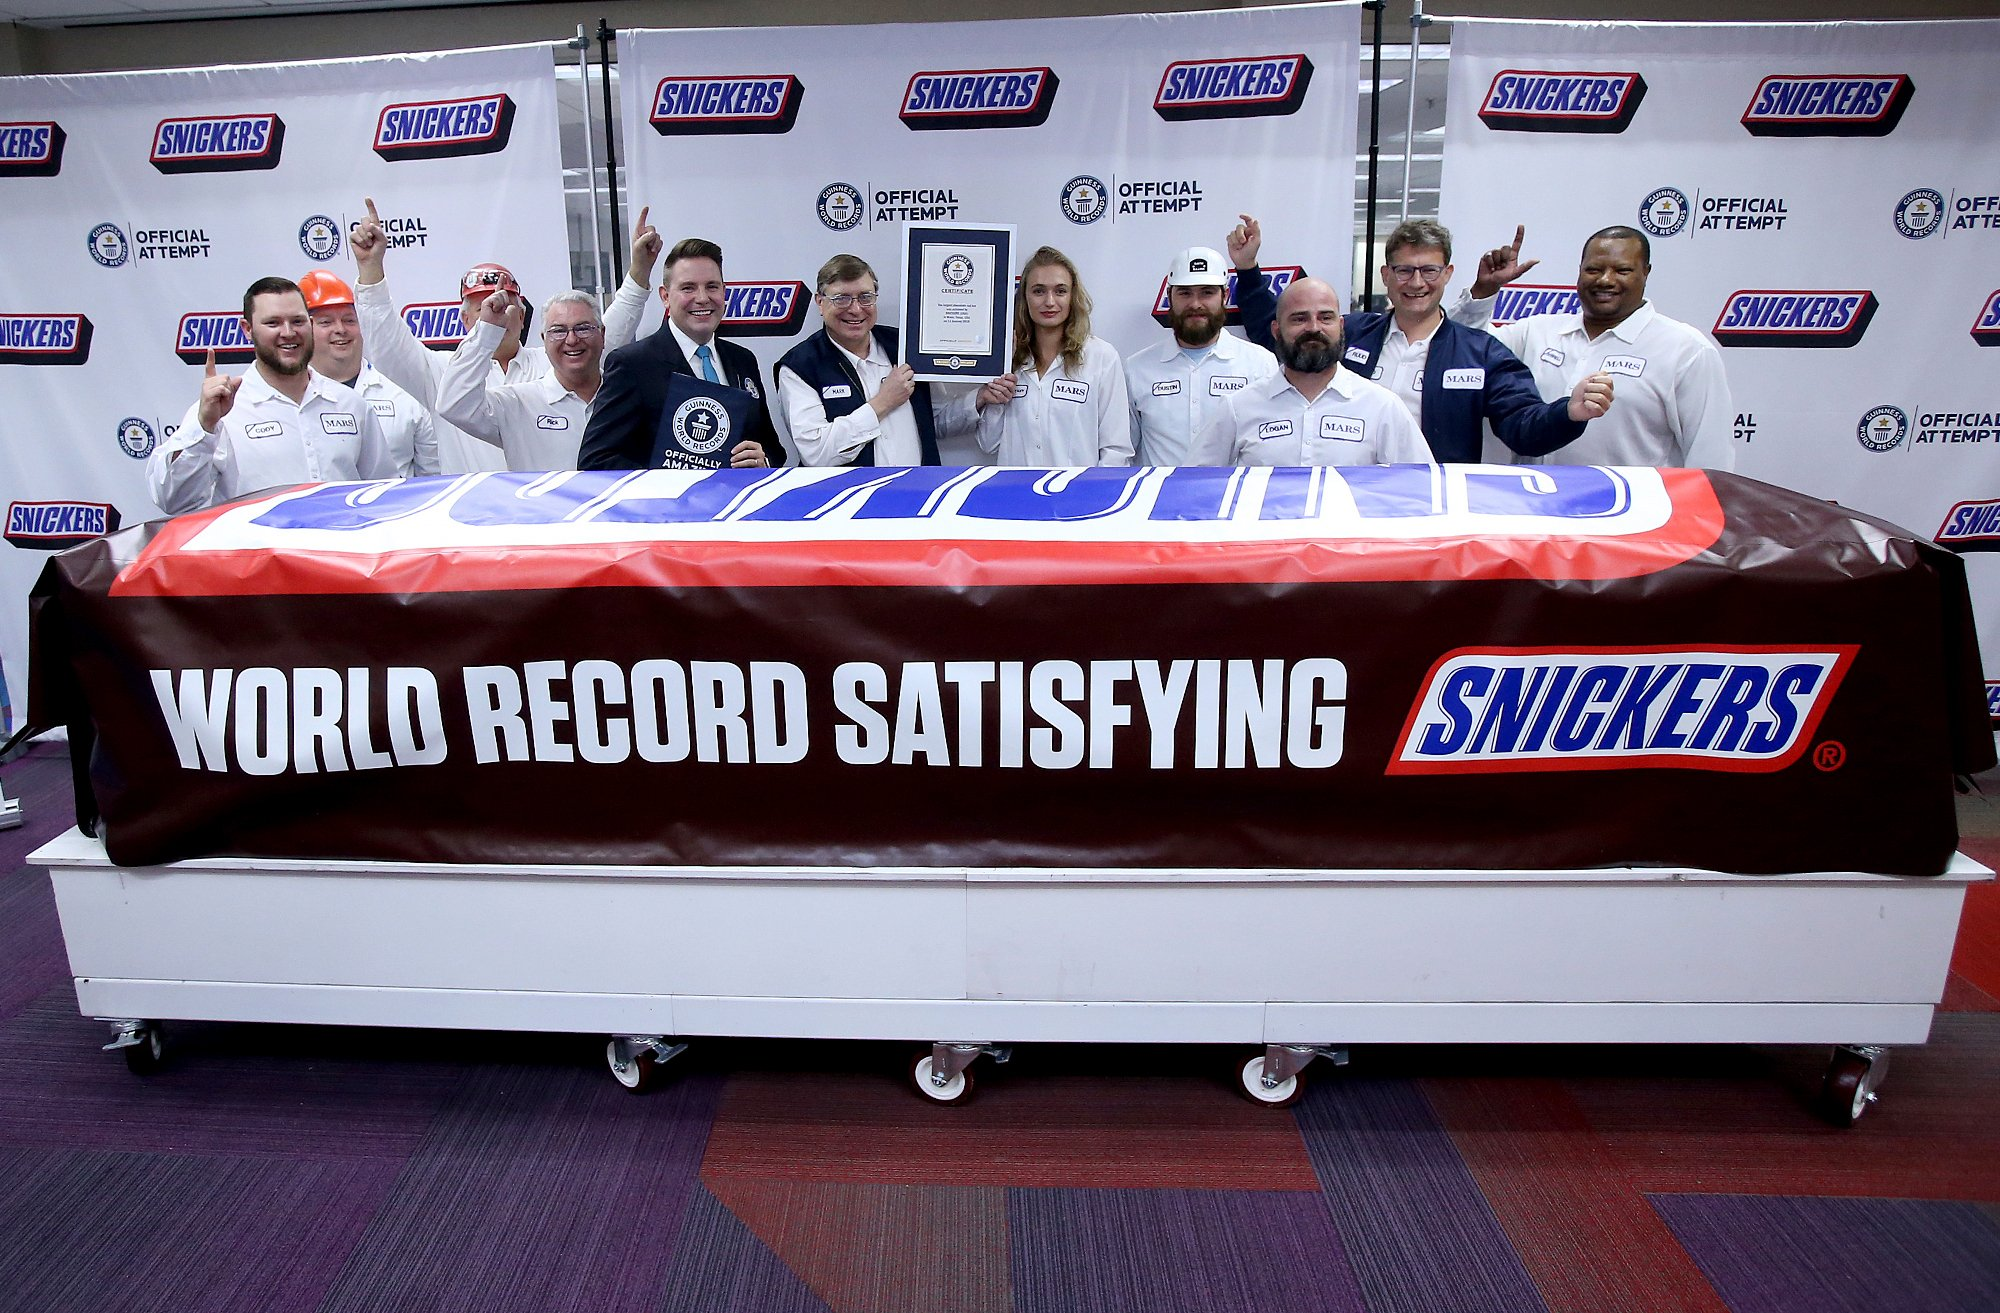 Mars Wrigley employees pose with a giant Snickers bar made at the plant in Waco, Texas. (Credit: Jerry Larson/AP via CNN Wire)